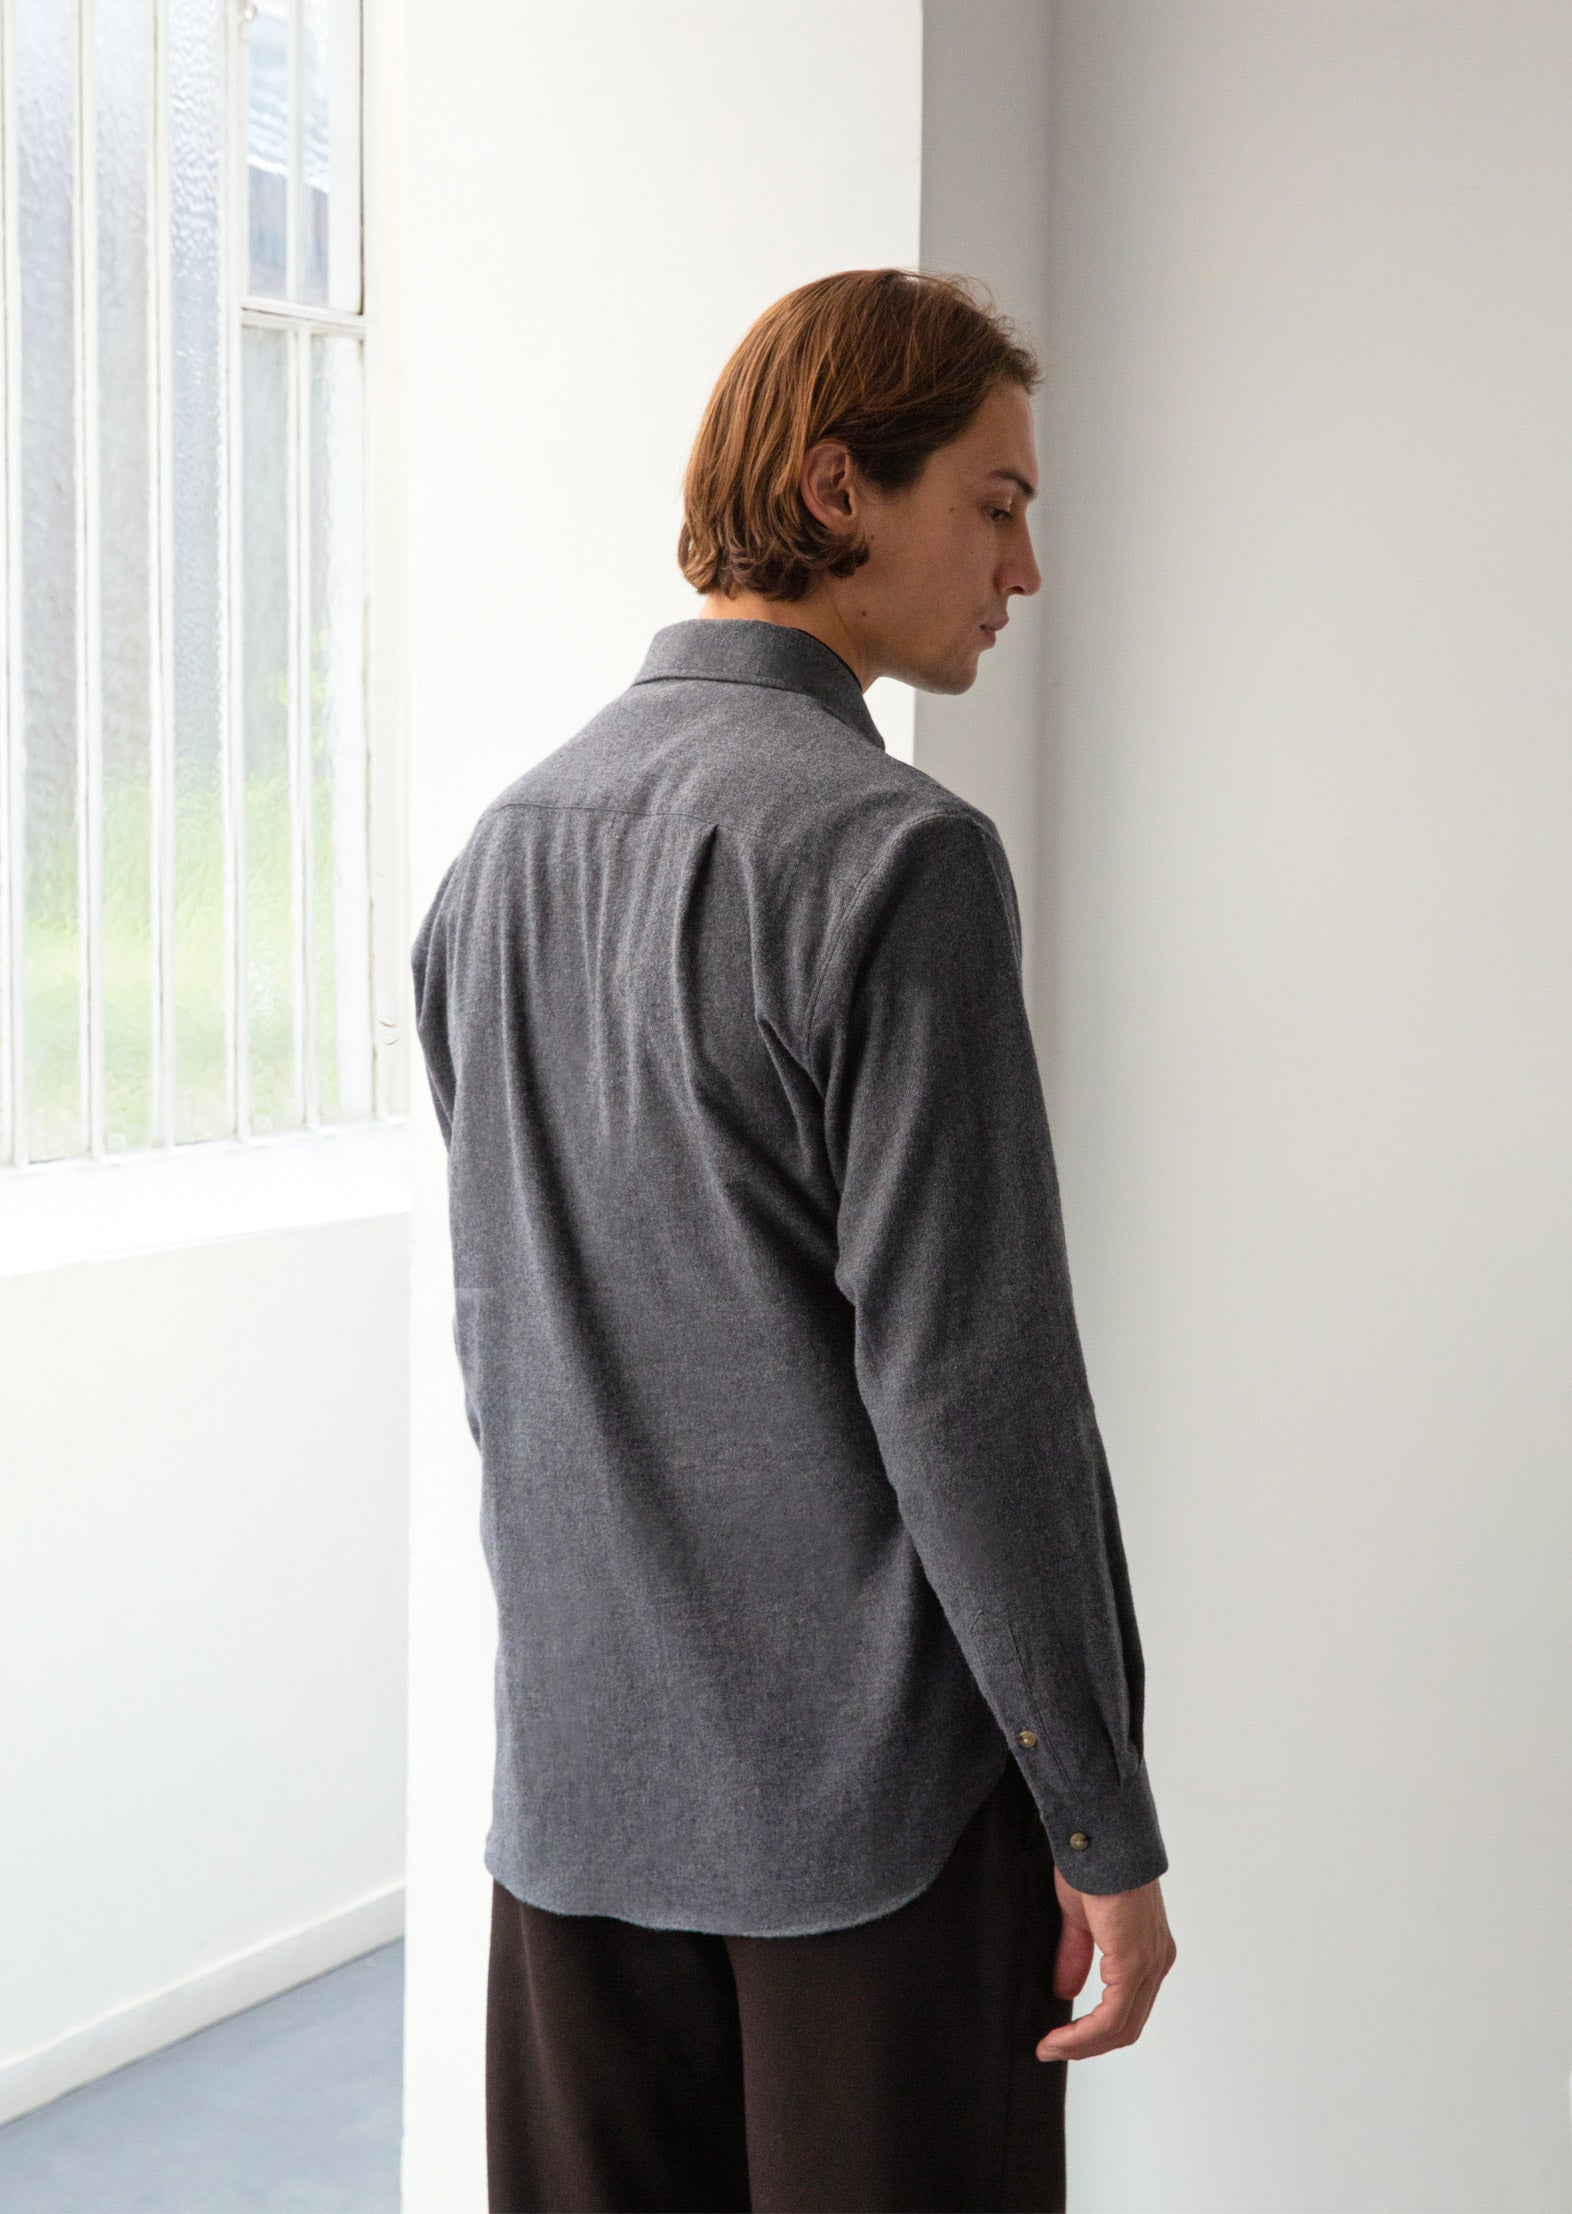 Buttondown shirt - Japanese brushed cotton flannel - Grey